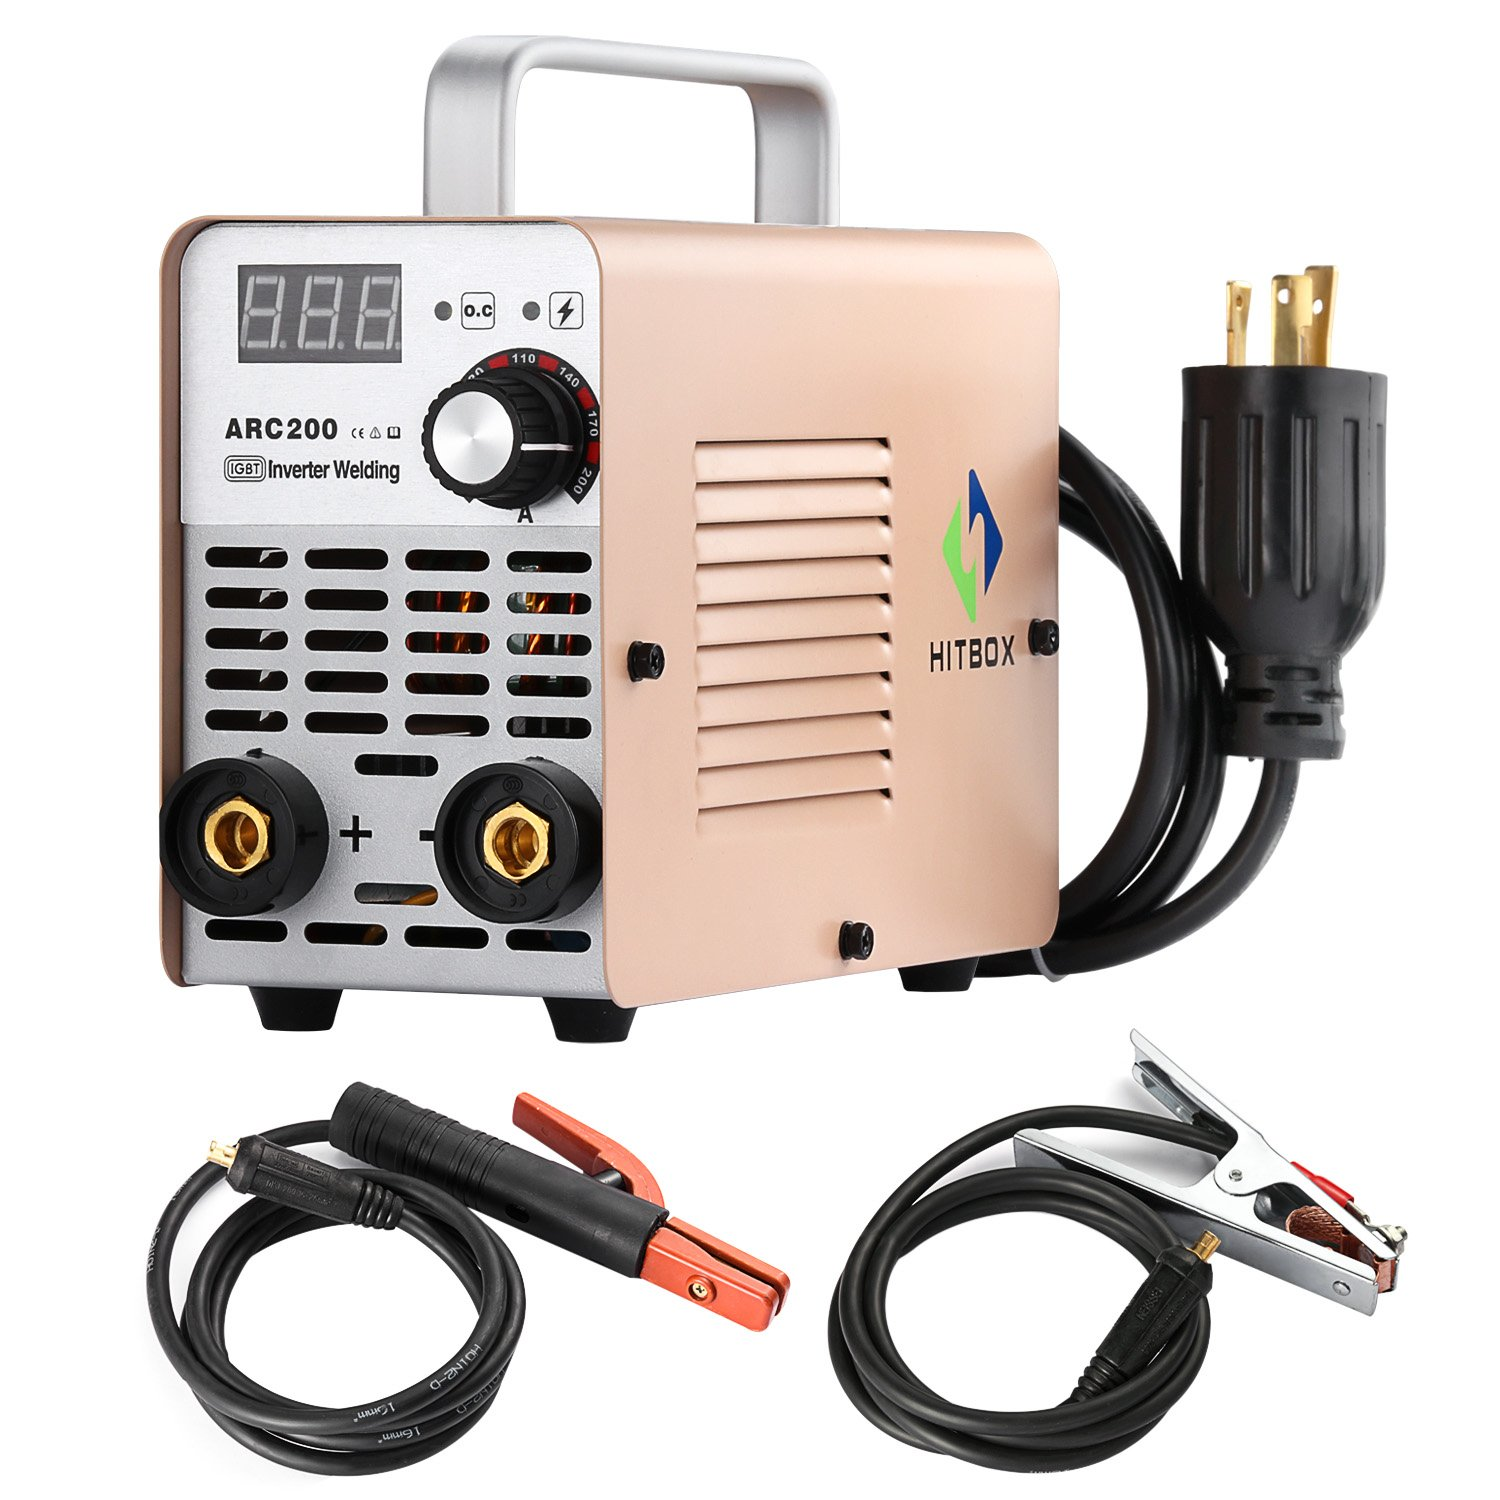 ARC Welder 200A Stick DC 220V Inverter Welding Machine MMA200 ZX7 Rod Stick Portable Welder Complete Package Ready to Use